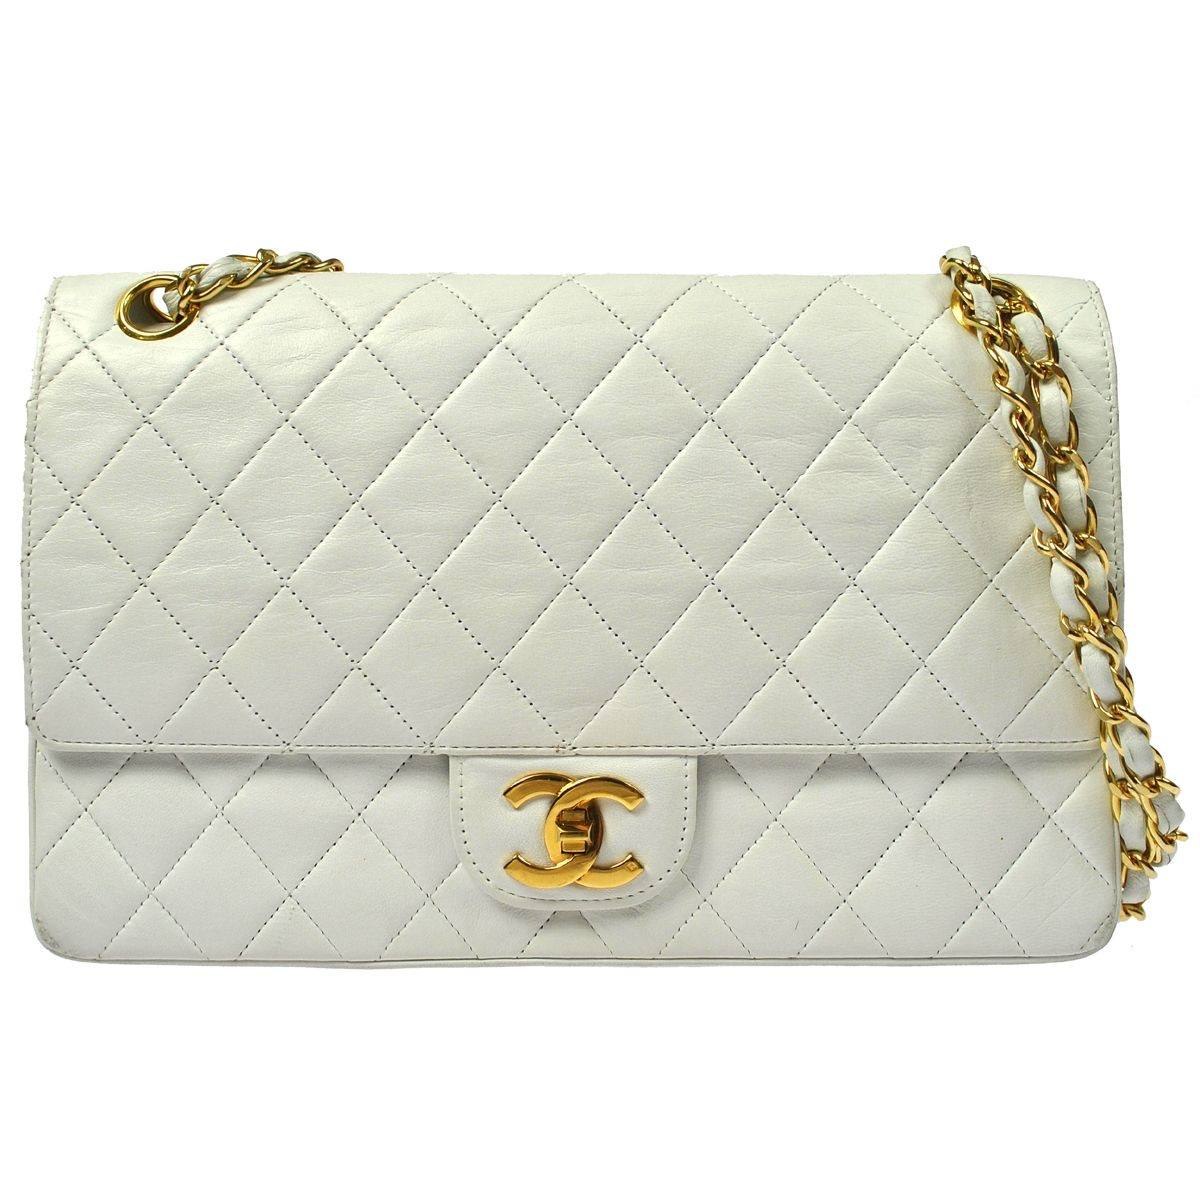 Authentic vintage Chanel White quilted flap bag with GHW · Truc De ... : chanel bag white quilted - Adamdwight.com